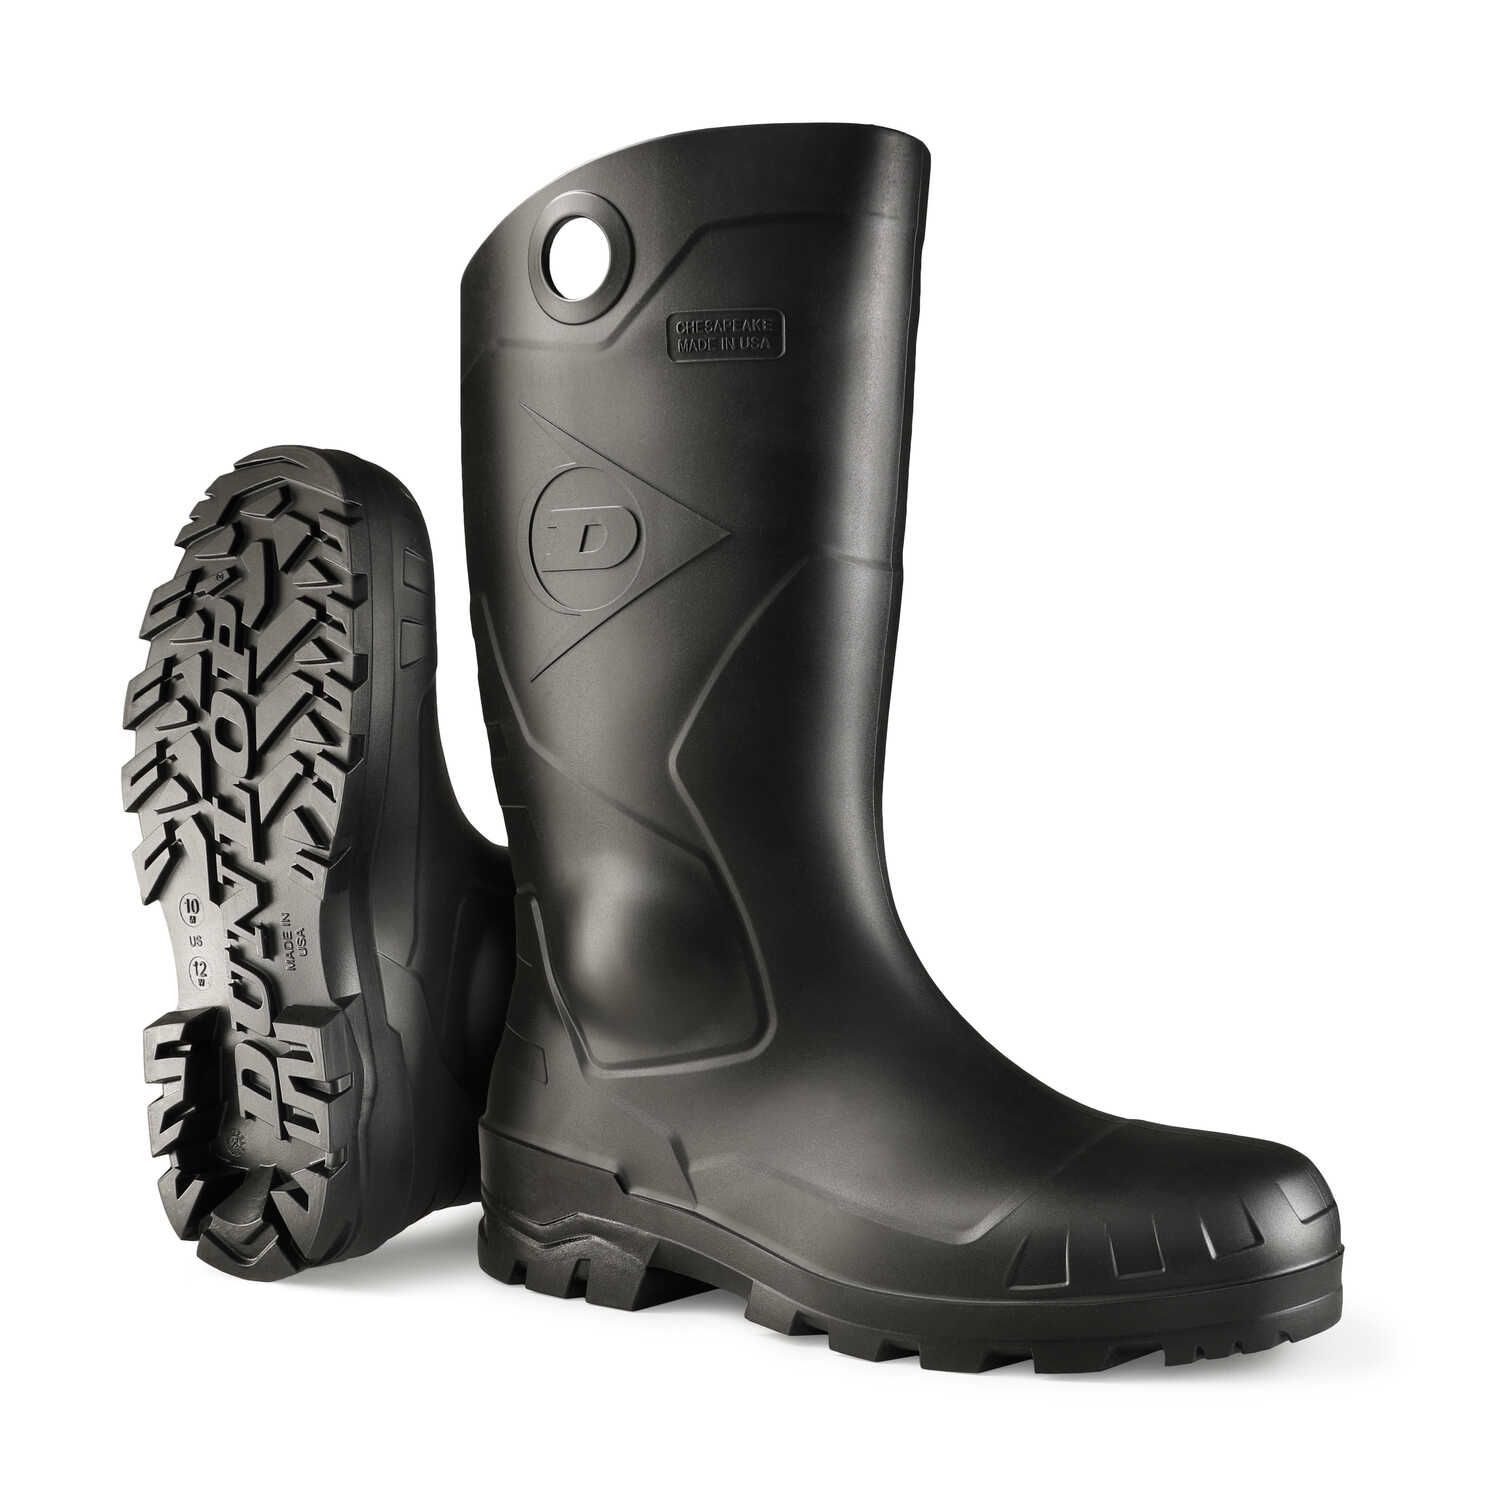 Dunlop  Male  Waterproof Boots  Size 5  Black